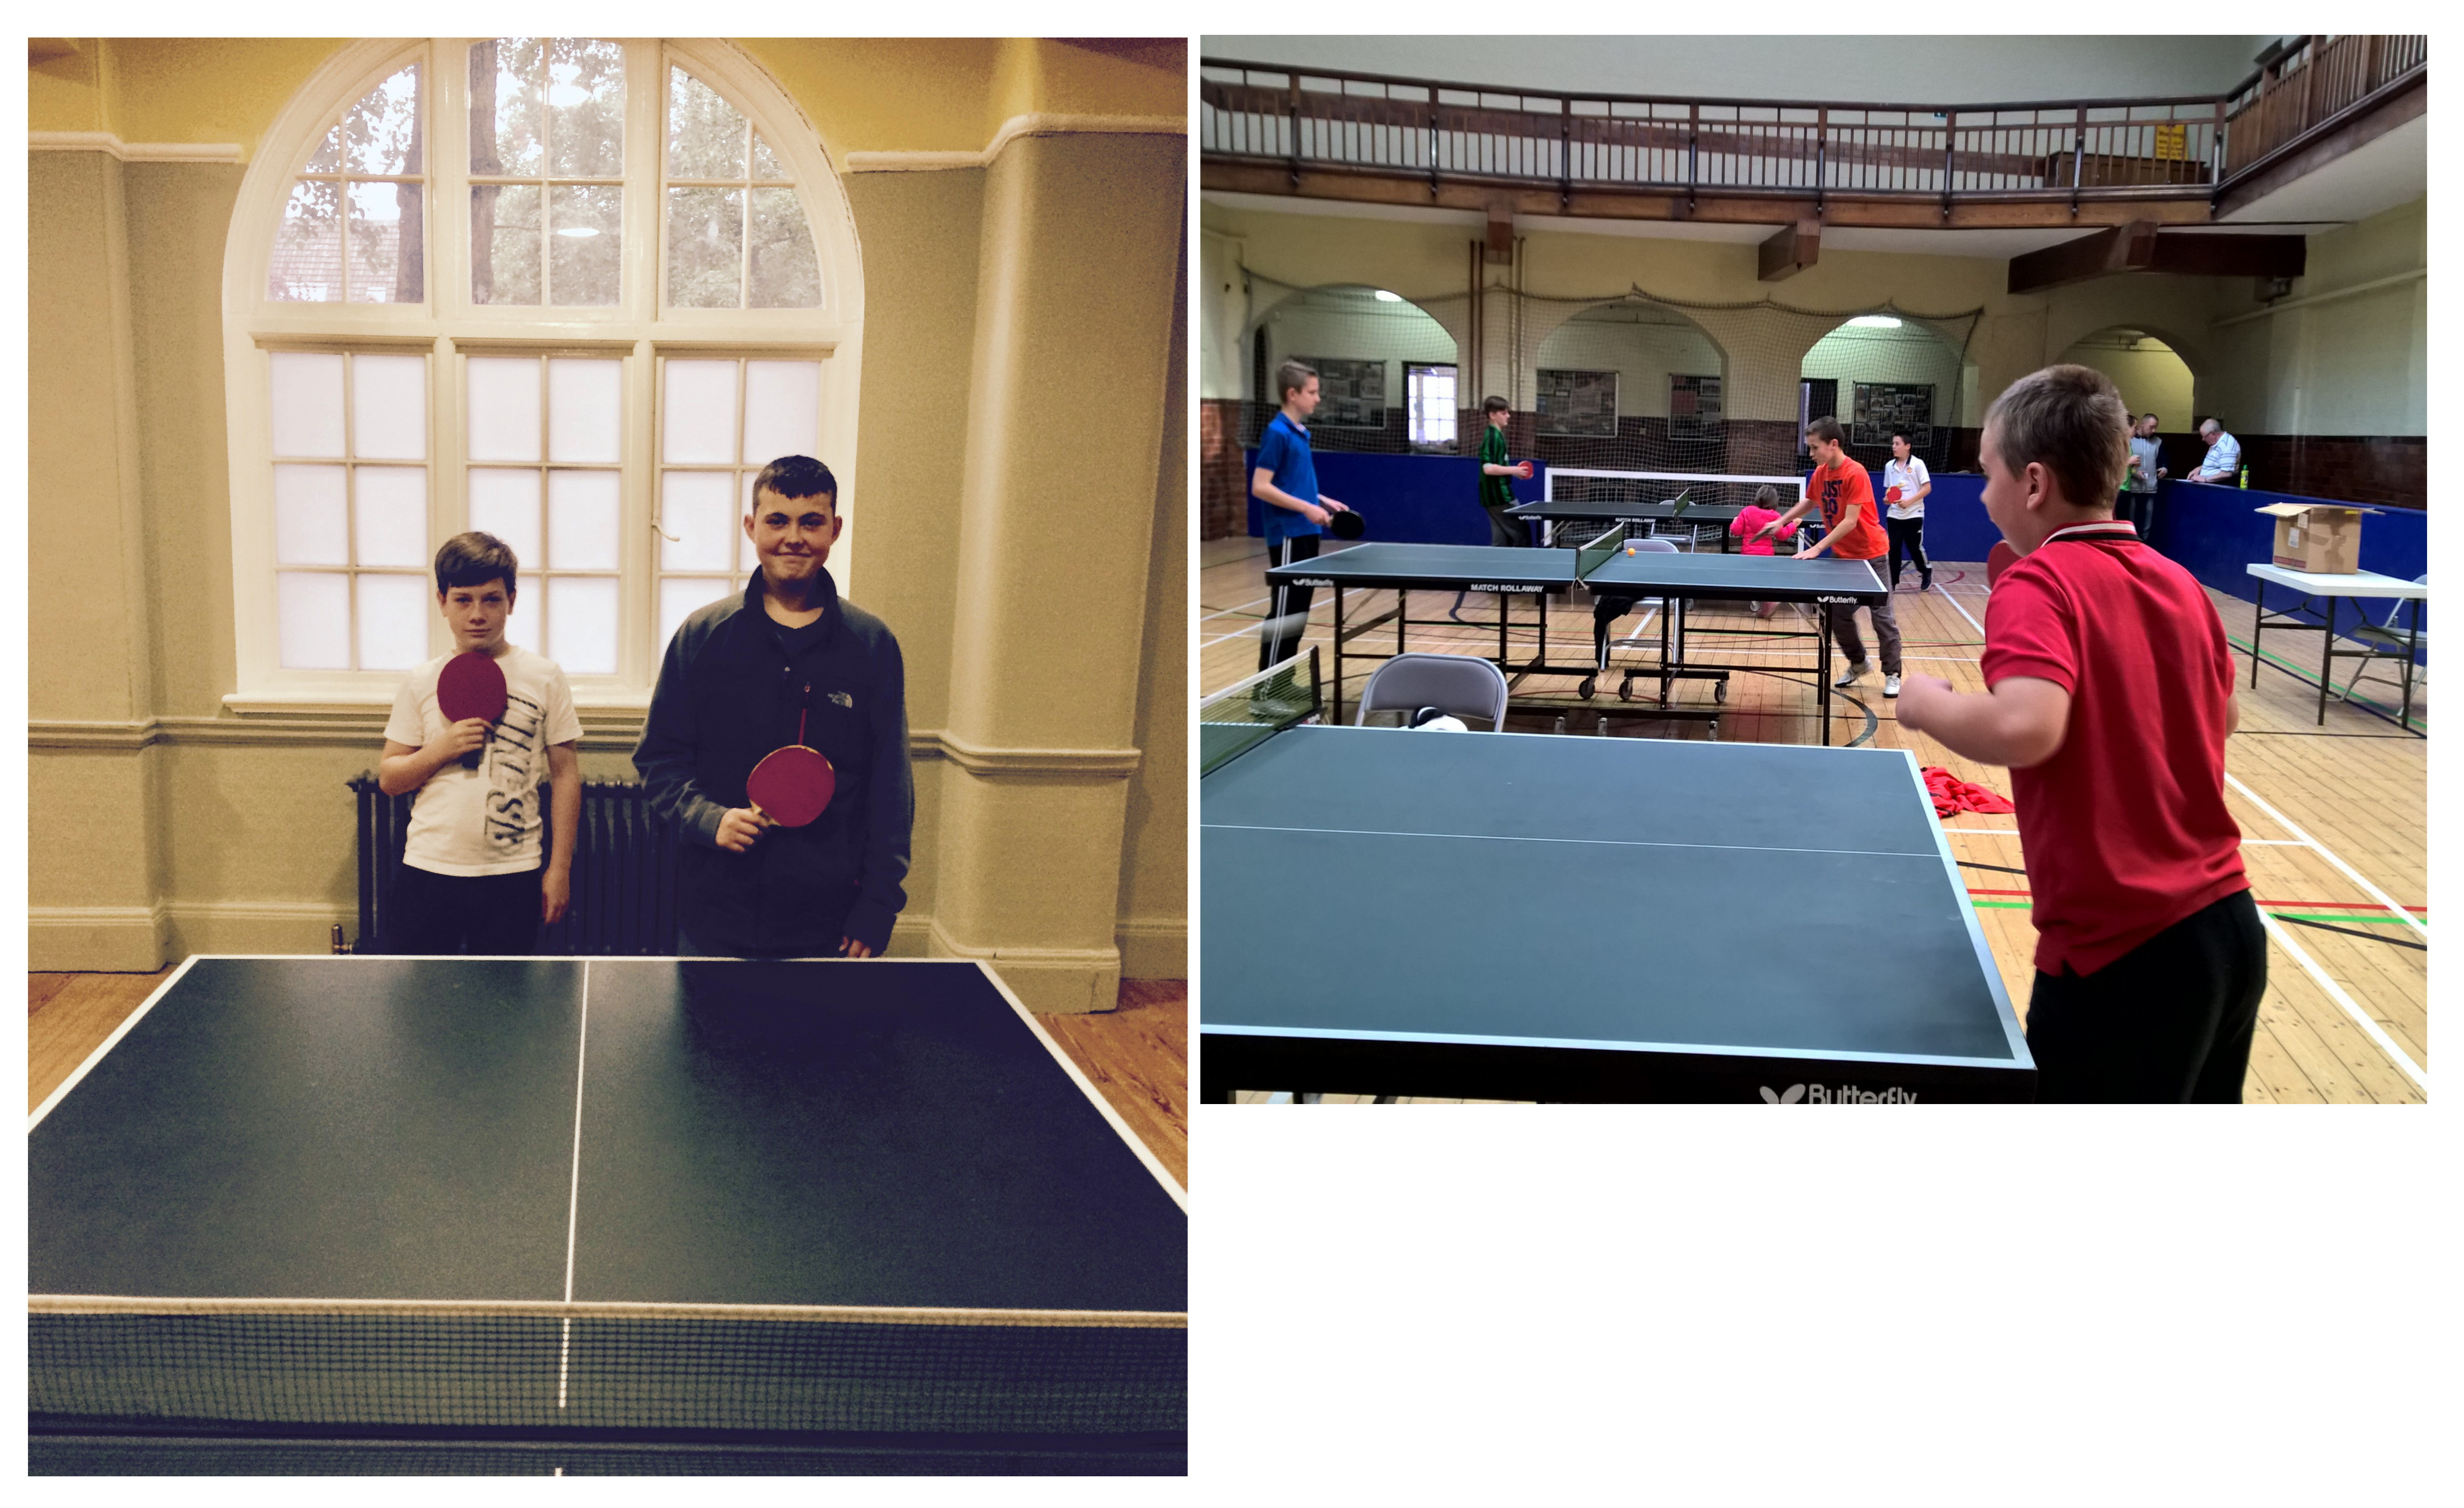 Lads in Table Tennis Finals